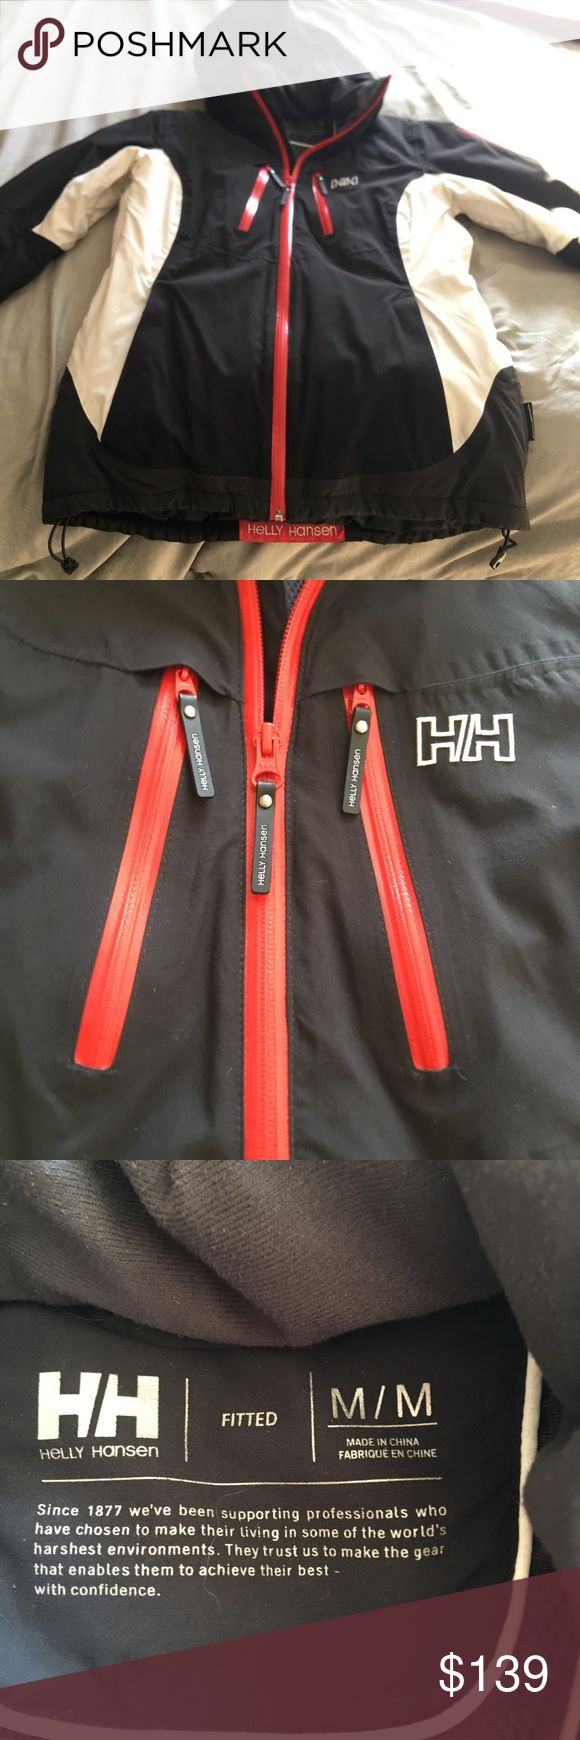 Helly Hansen Helly Tech Performance Ski Jacket Women's fitted Helly Hansen Jacket. Super warm ski jacket, black and white with red accents. In excellent shape. White part is slightly dirty from riding the lifts but definitely would come out if ran through the wash with some tech gear wash. Waterproof and breathable. Amazing quality Jacket. Helly Hansen Jackets & Coats